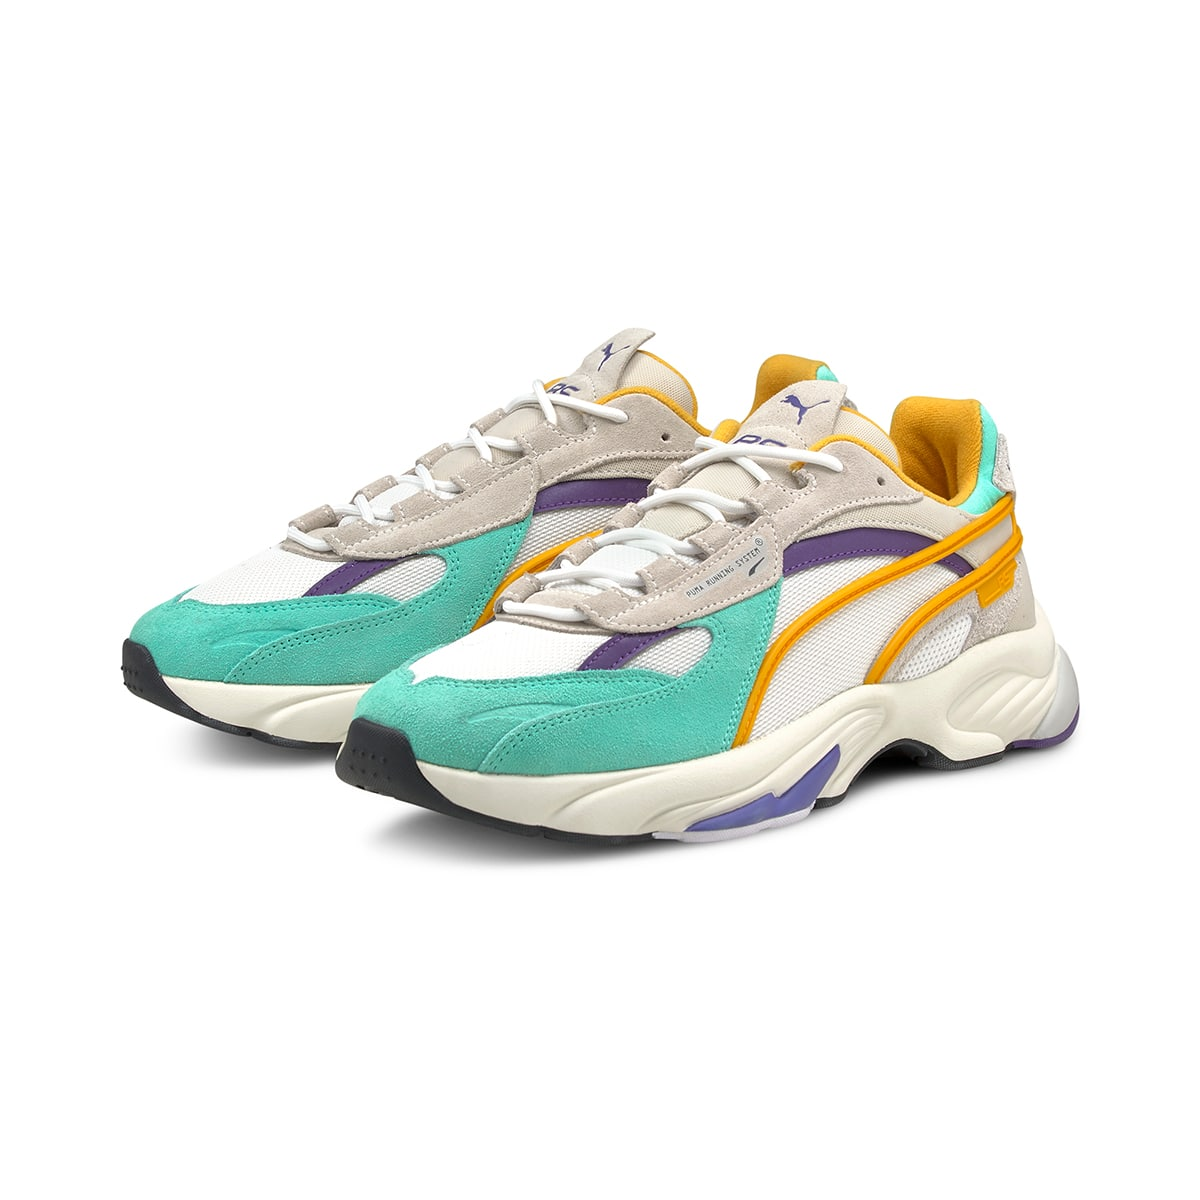 PUMA RS-CONNECT DRIP Biscay Green-Puma White 21SP-I_photo_large